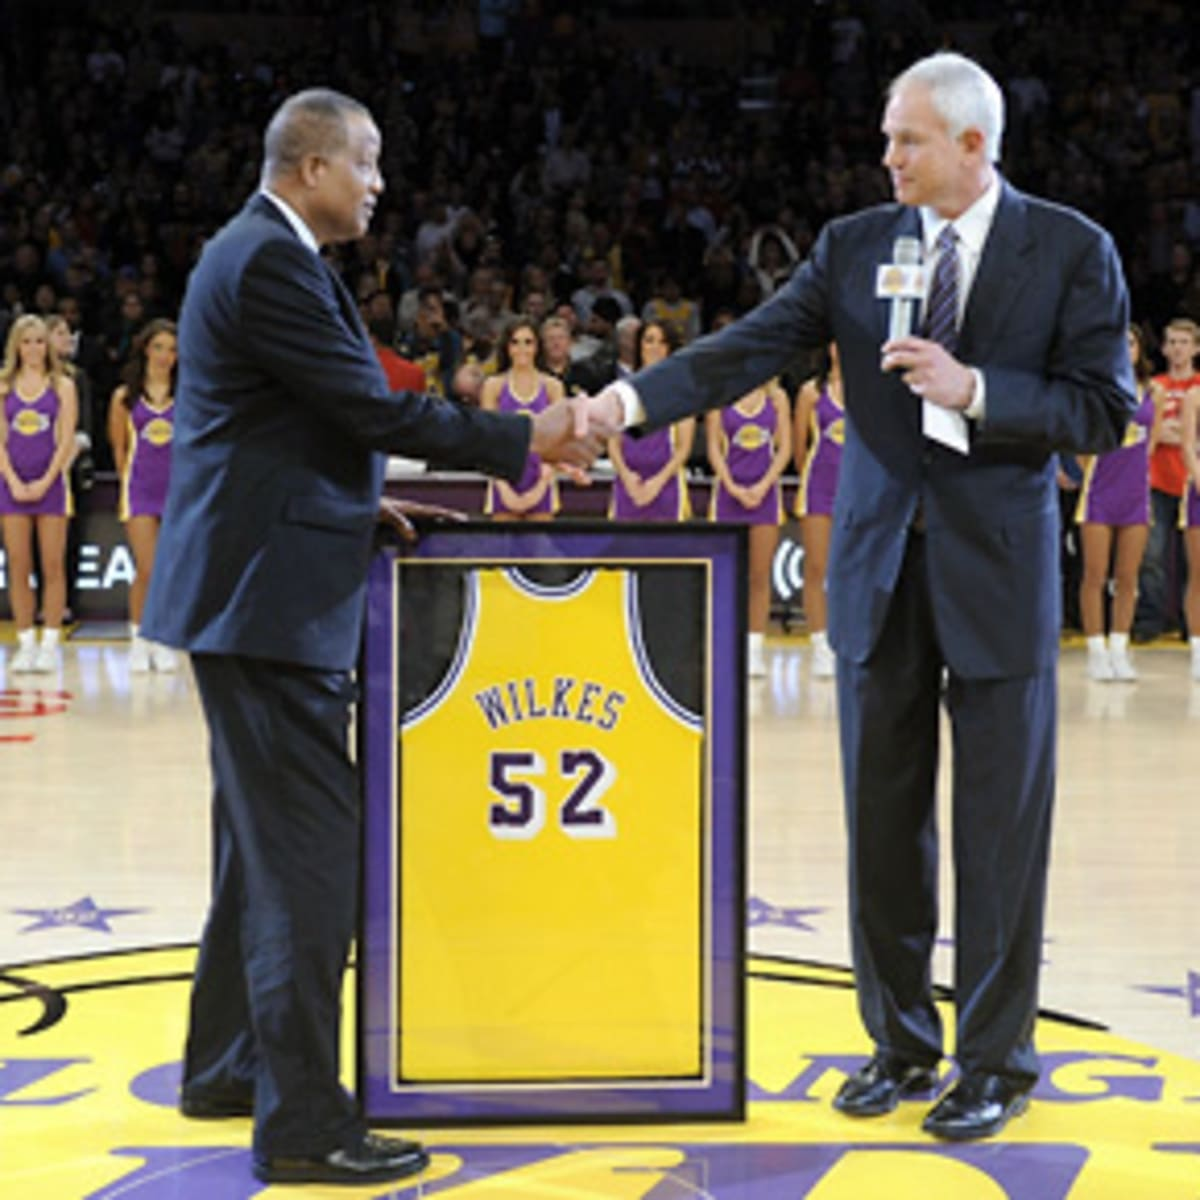 Lakers retire Jamaal Wilkes' No. 52 jersey - Sports Illustrated